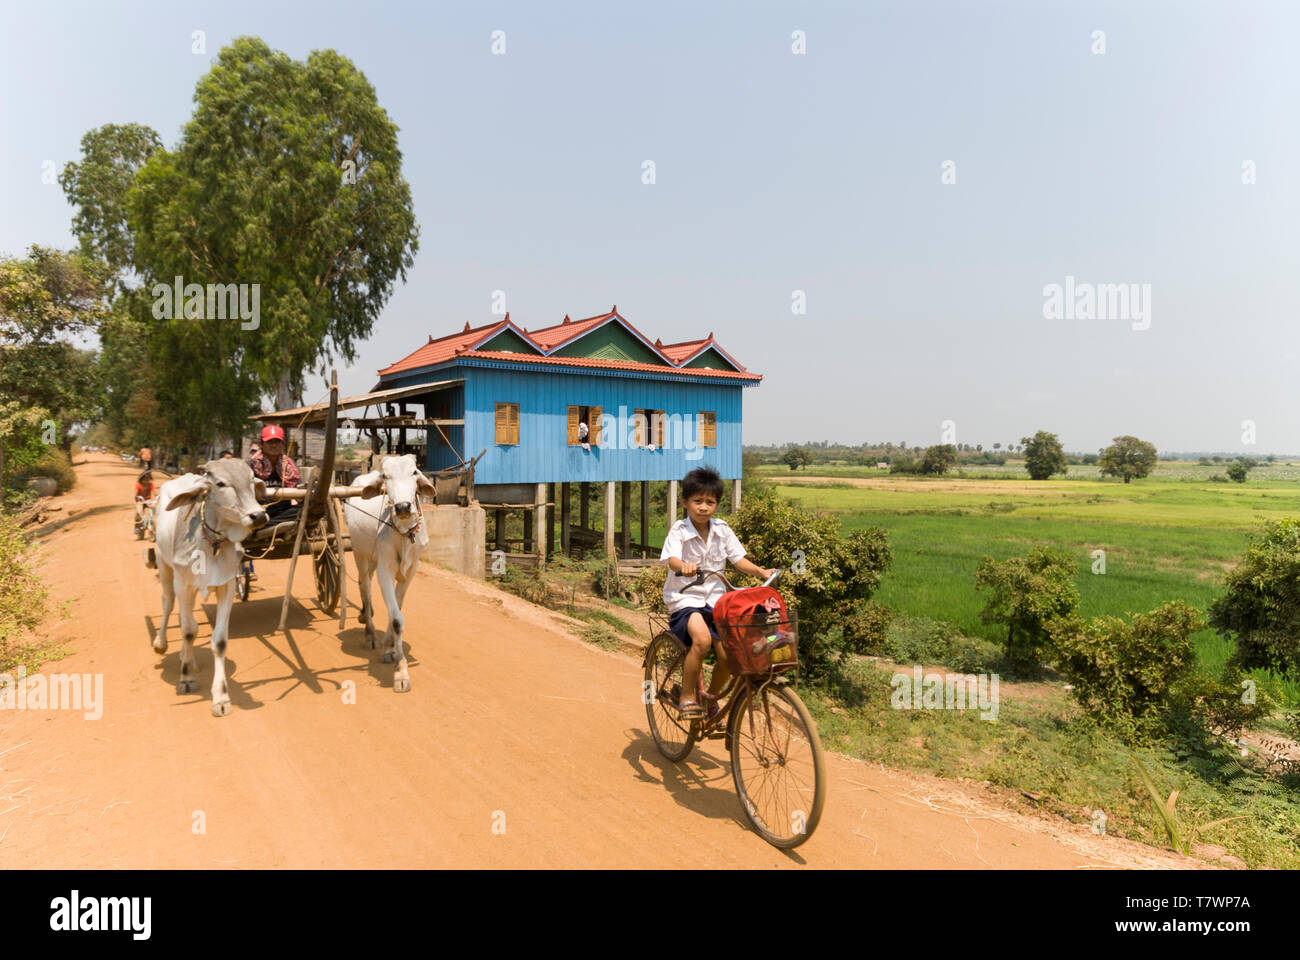 Cambodia, Kampong Chhnang, Kampong Tralach, Along the Tonle Sap River, landscape of rice fields in Kompong Tralach Krom - Stock Image